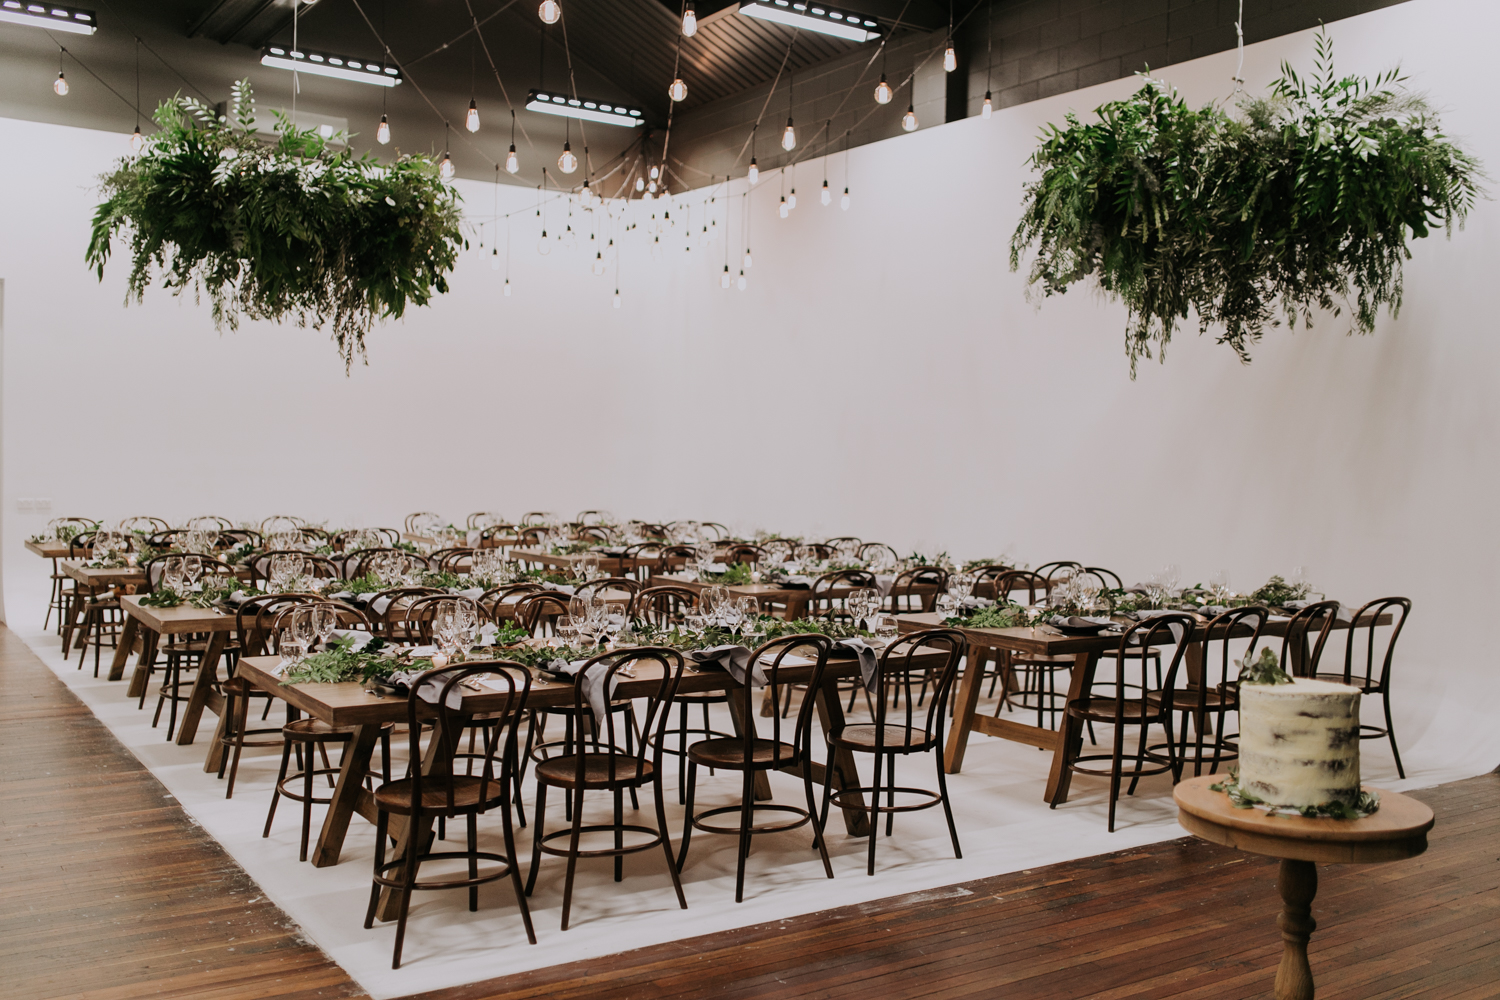 white+white weddings and events carrie and jay real wedding styling bentwood chairs banquet tables timber rustic studio warehouse venue hanging greenery